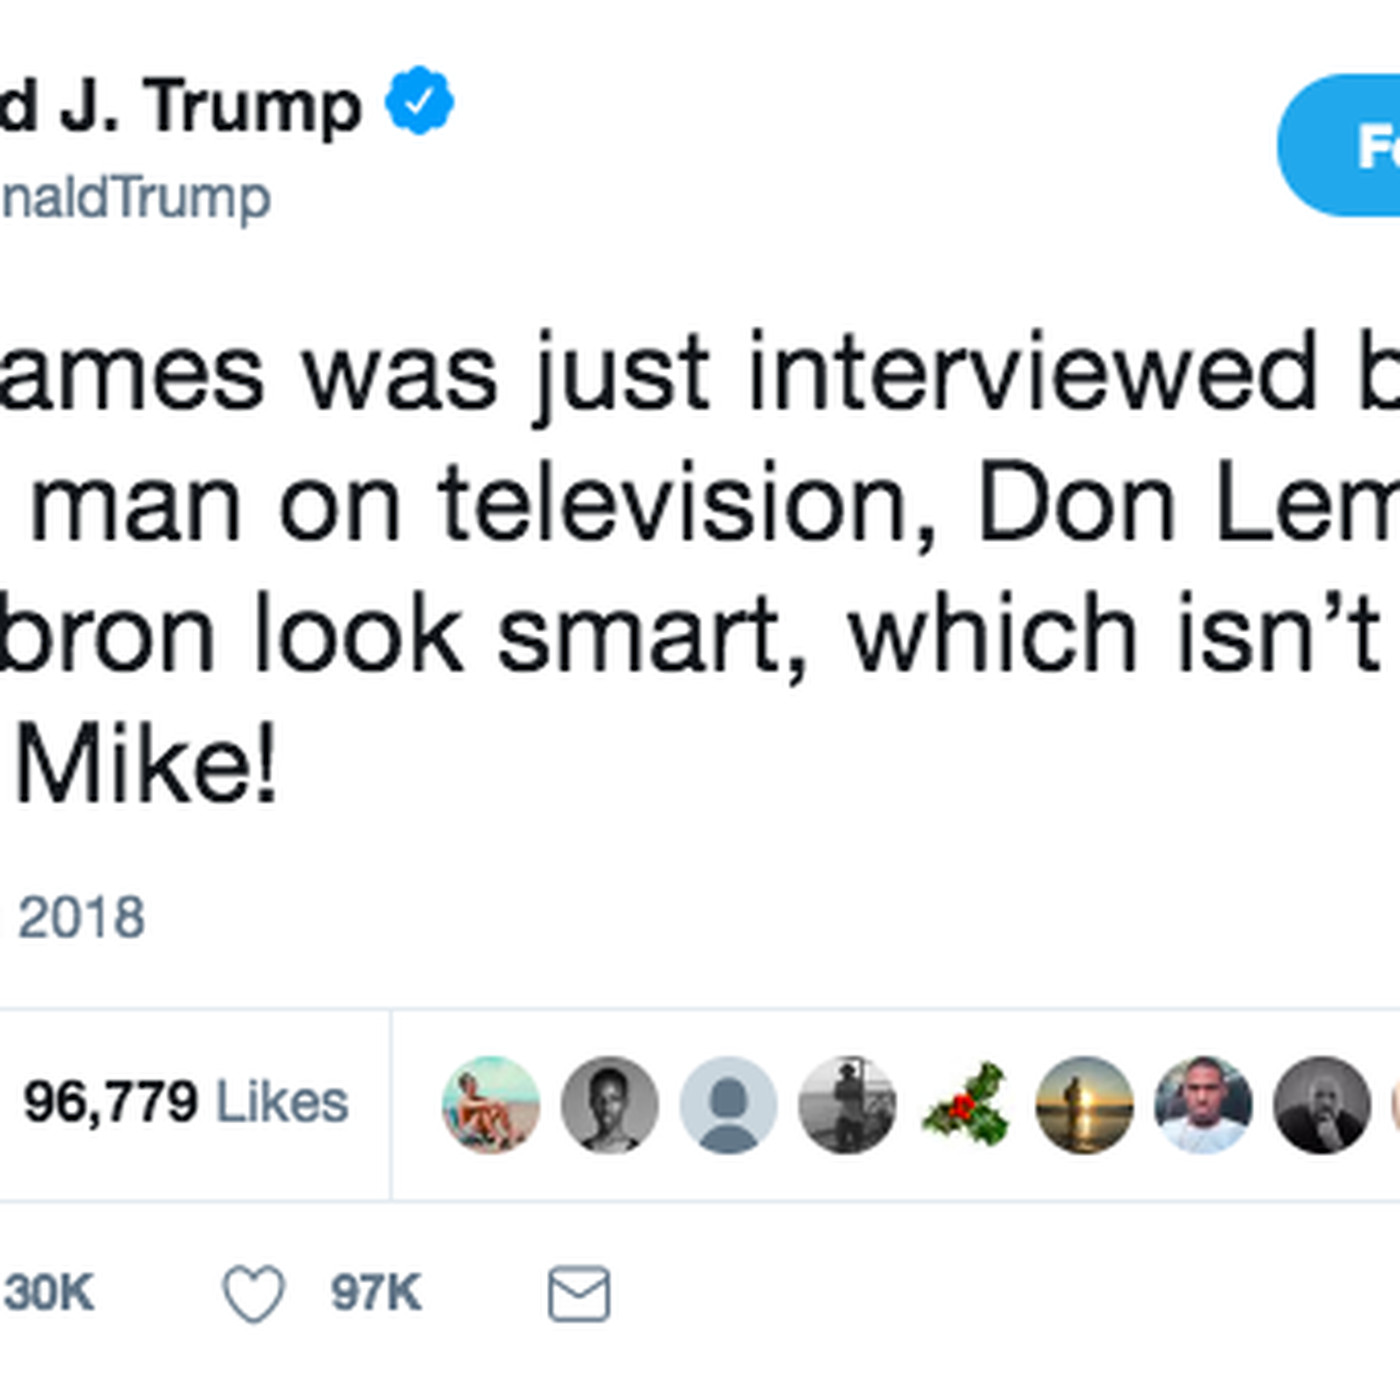 6a97e386a37a Trump attacks LeBron James — and Don Lemon — in a tweet - Vox